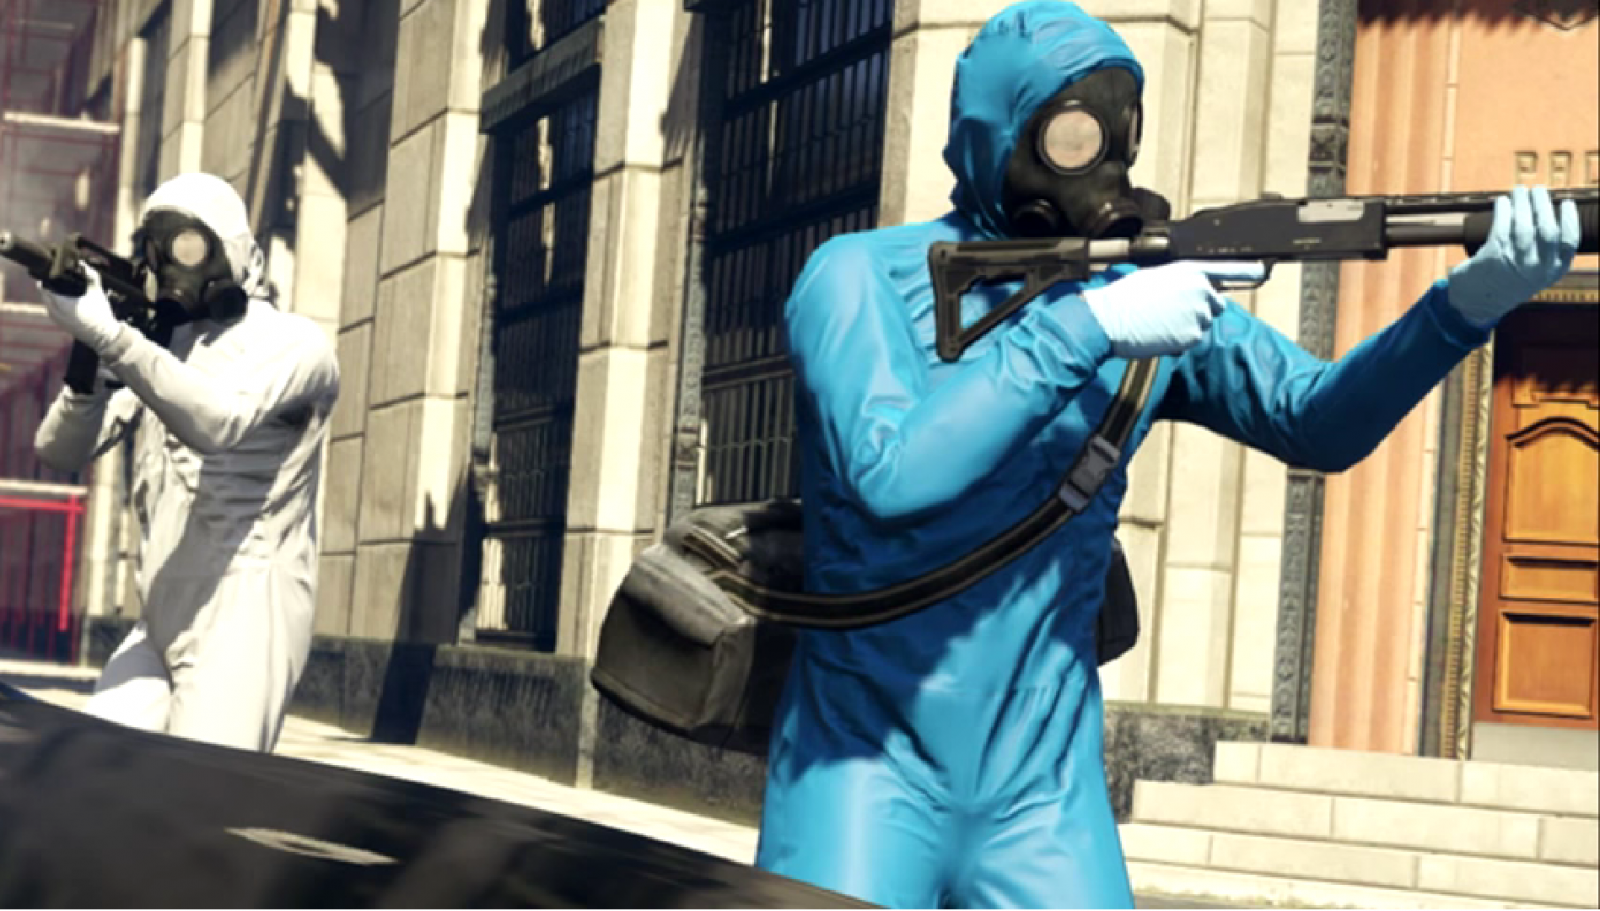 GTA 5 Online Heists Leaked exclusive T-shirts and Heist awards new DLC clothes and masks breakdown